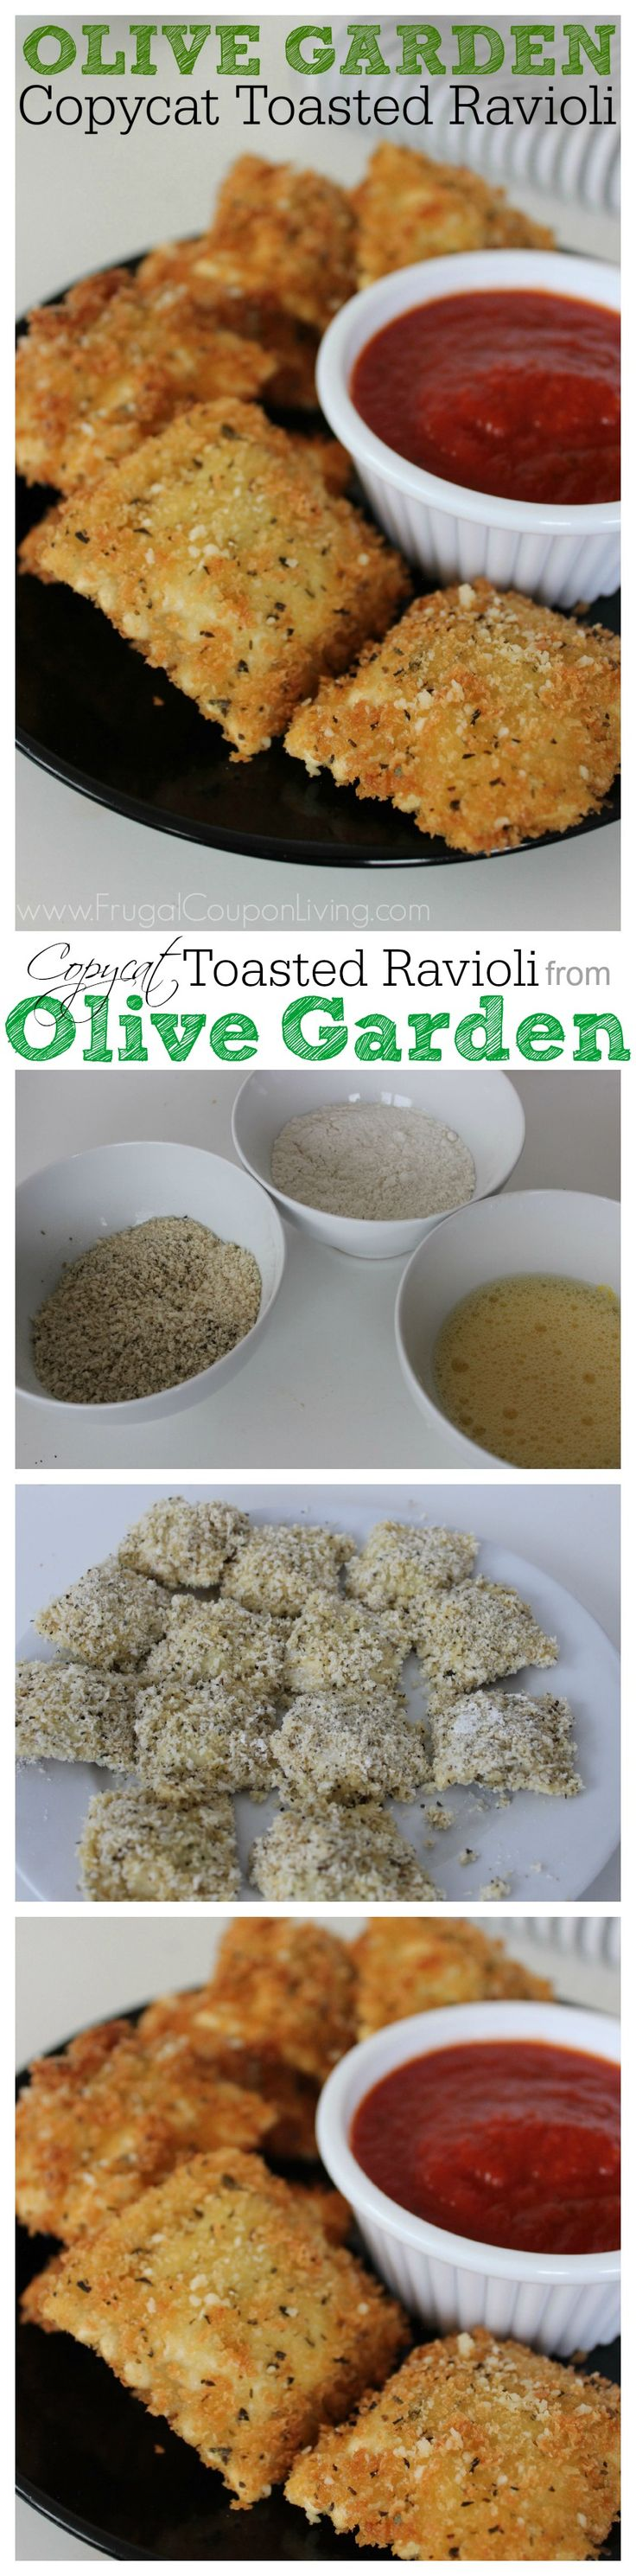 Copycat Recipe! Copycat Olive Garden Toasted Ravioli Recipe – So Delicious! This and copy cat Olive Garden Dressing on Frugal Coupon Living.